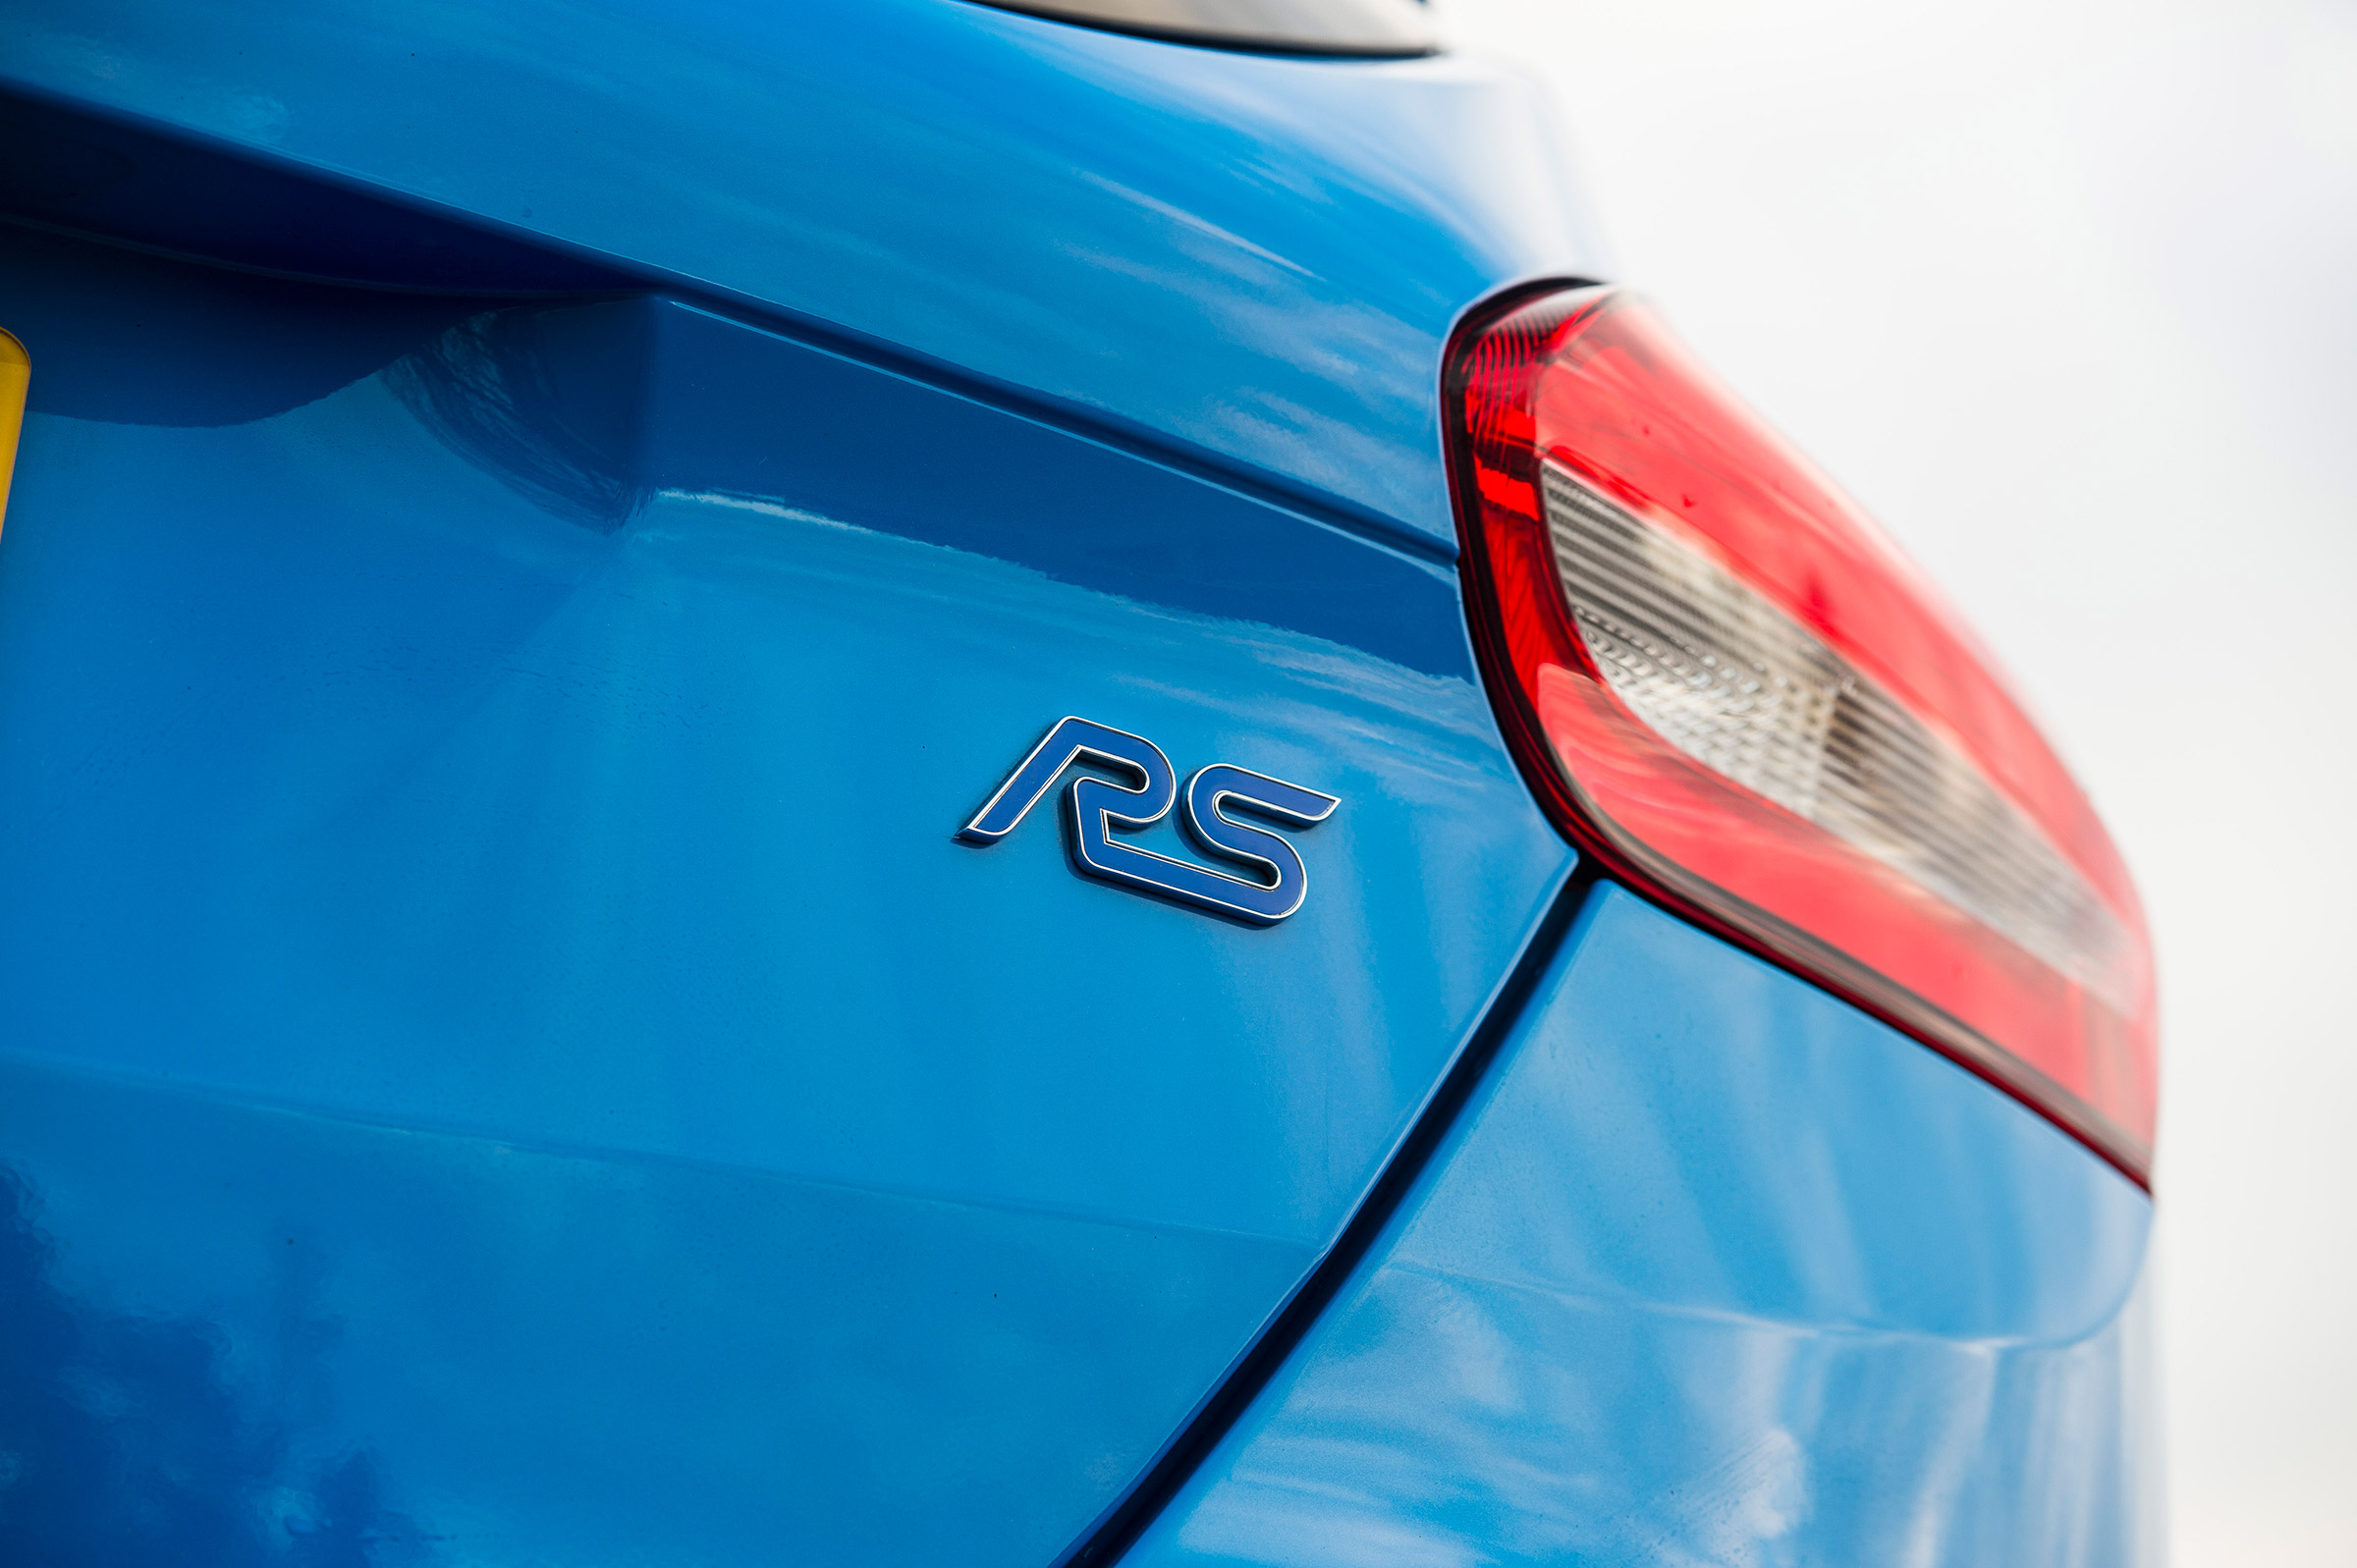 2017 Ford Focus RS Exterior View Rear Emblem (Photo 6 of 23)